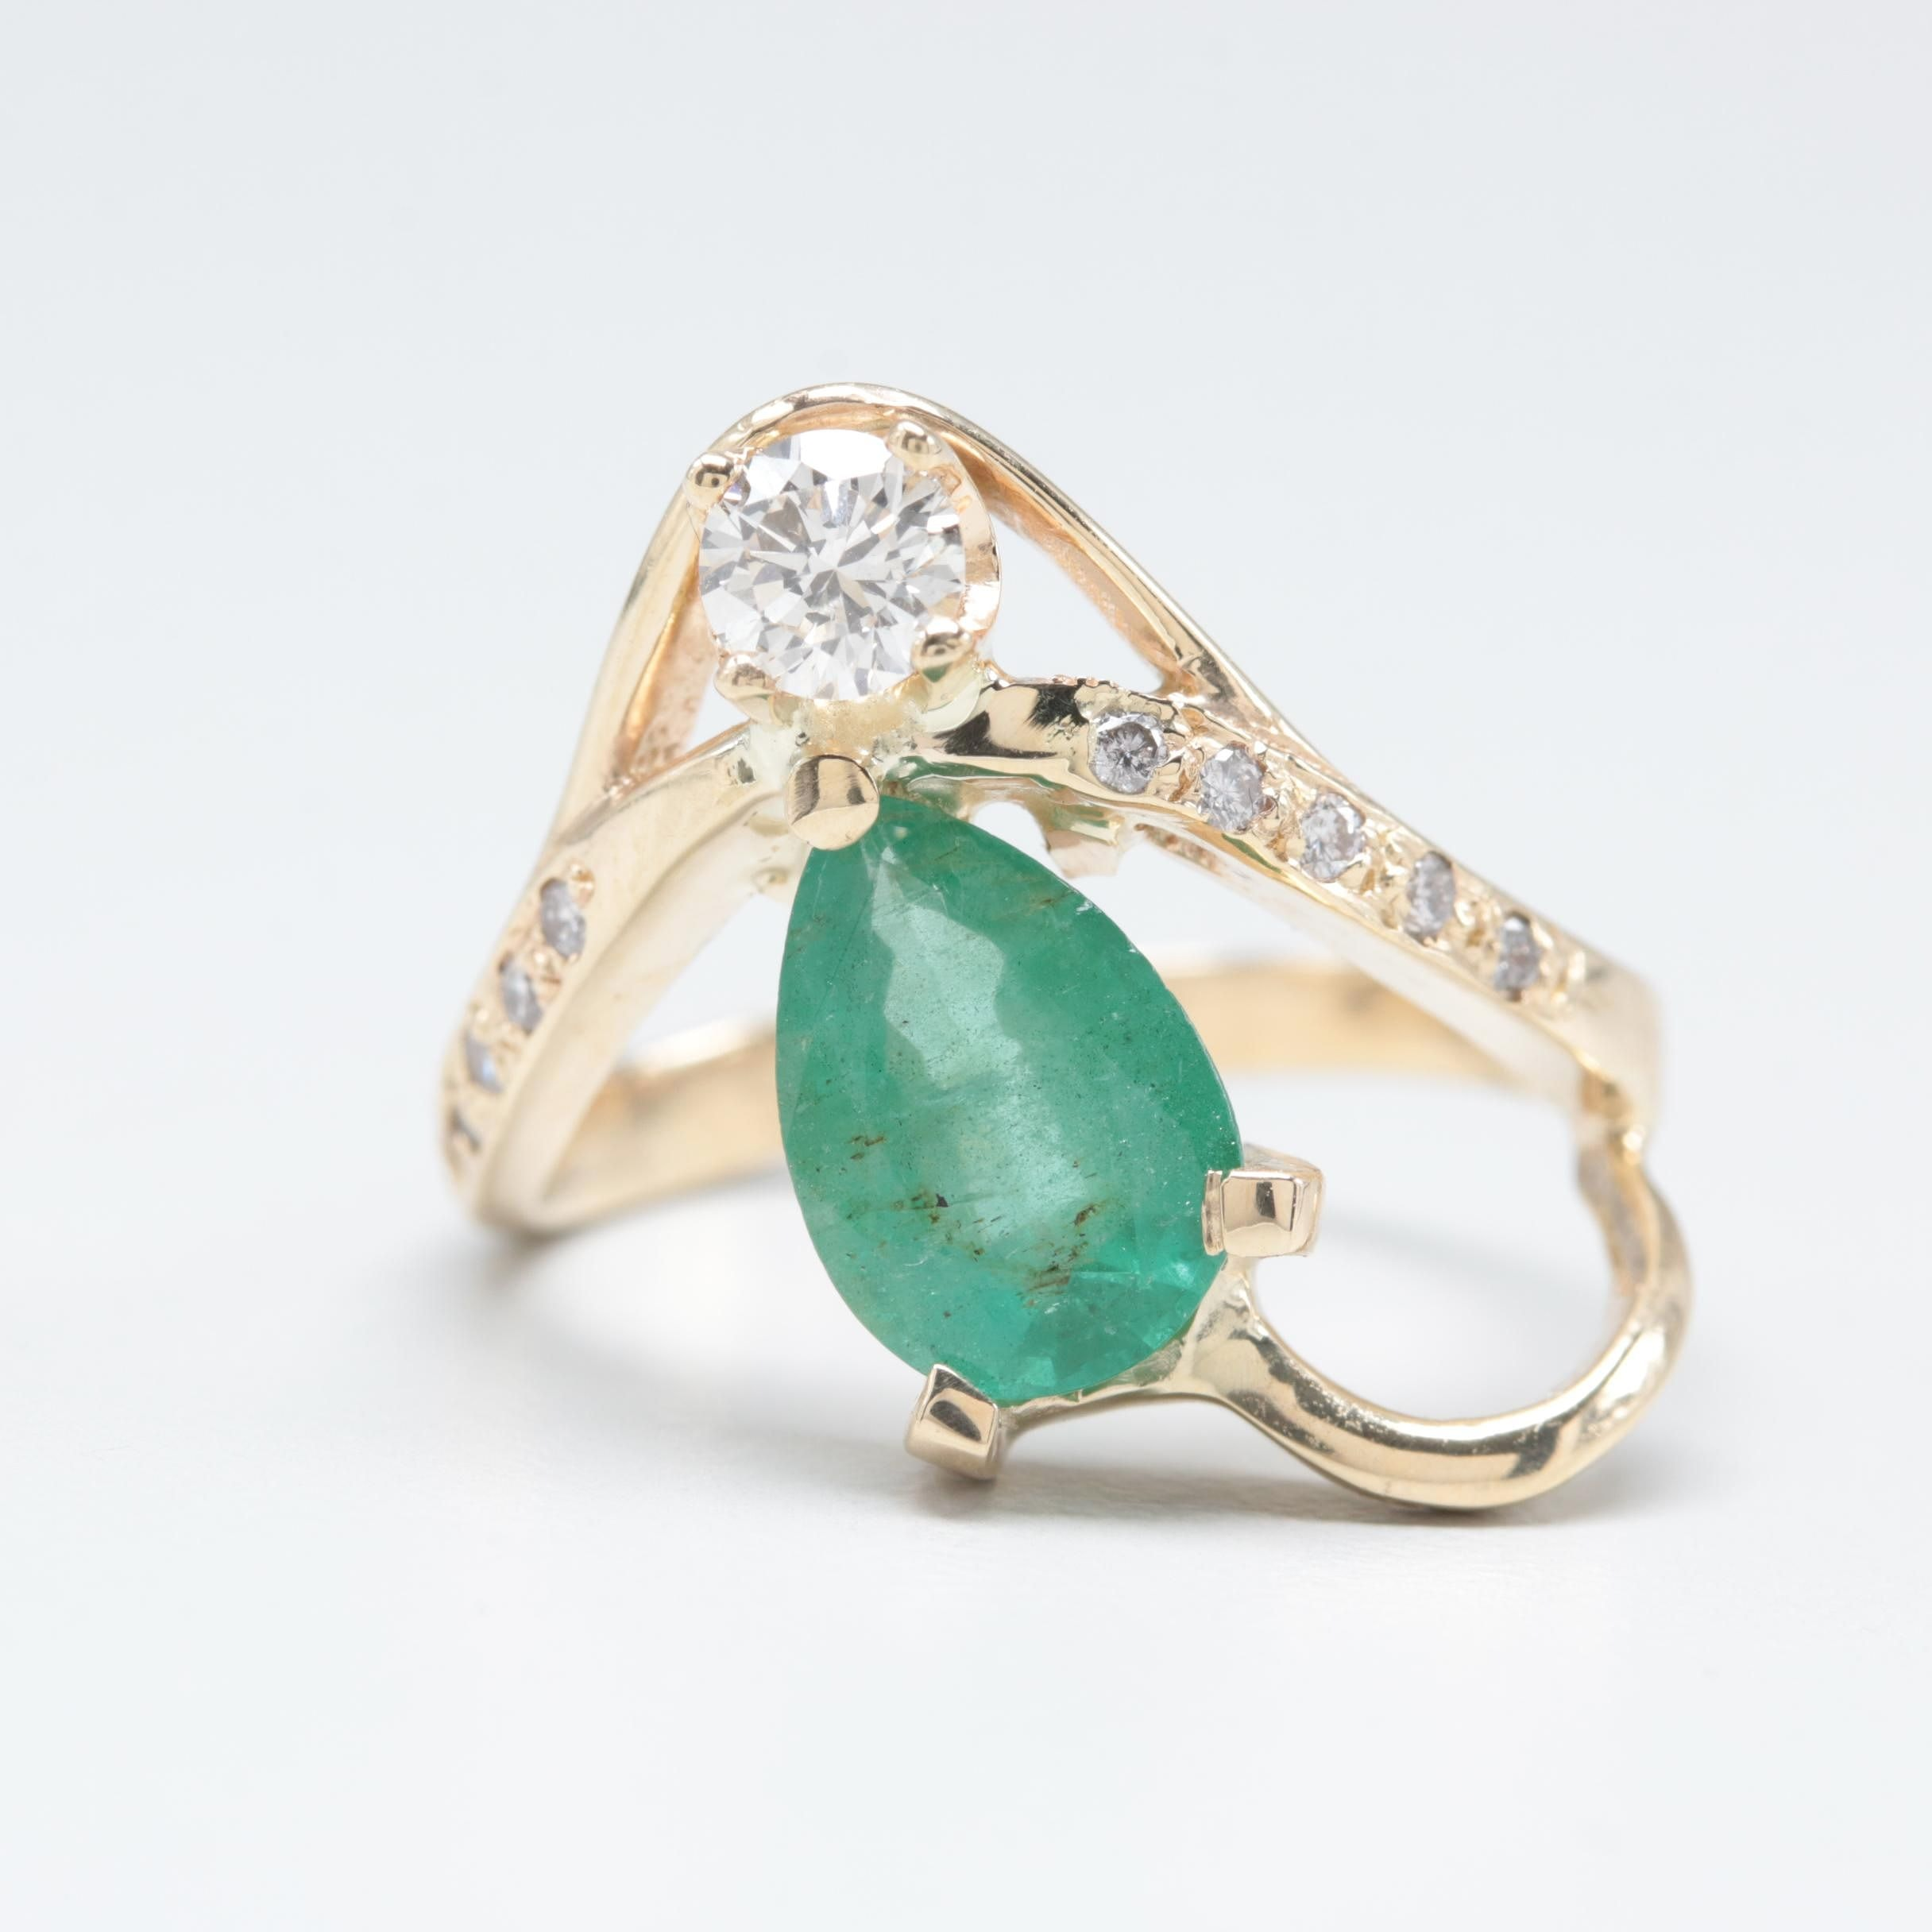 14K Yellow Gold 1.17 CT Emerald and Diamond Ring